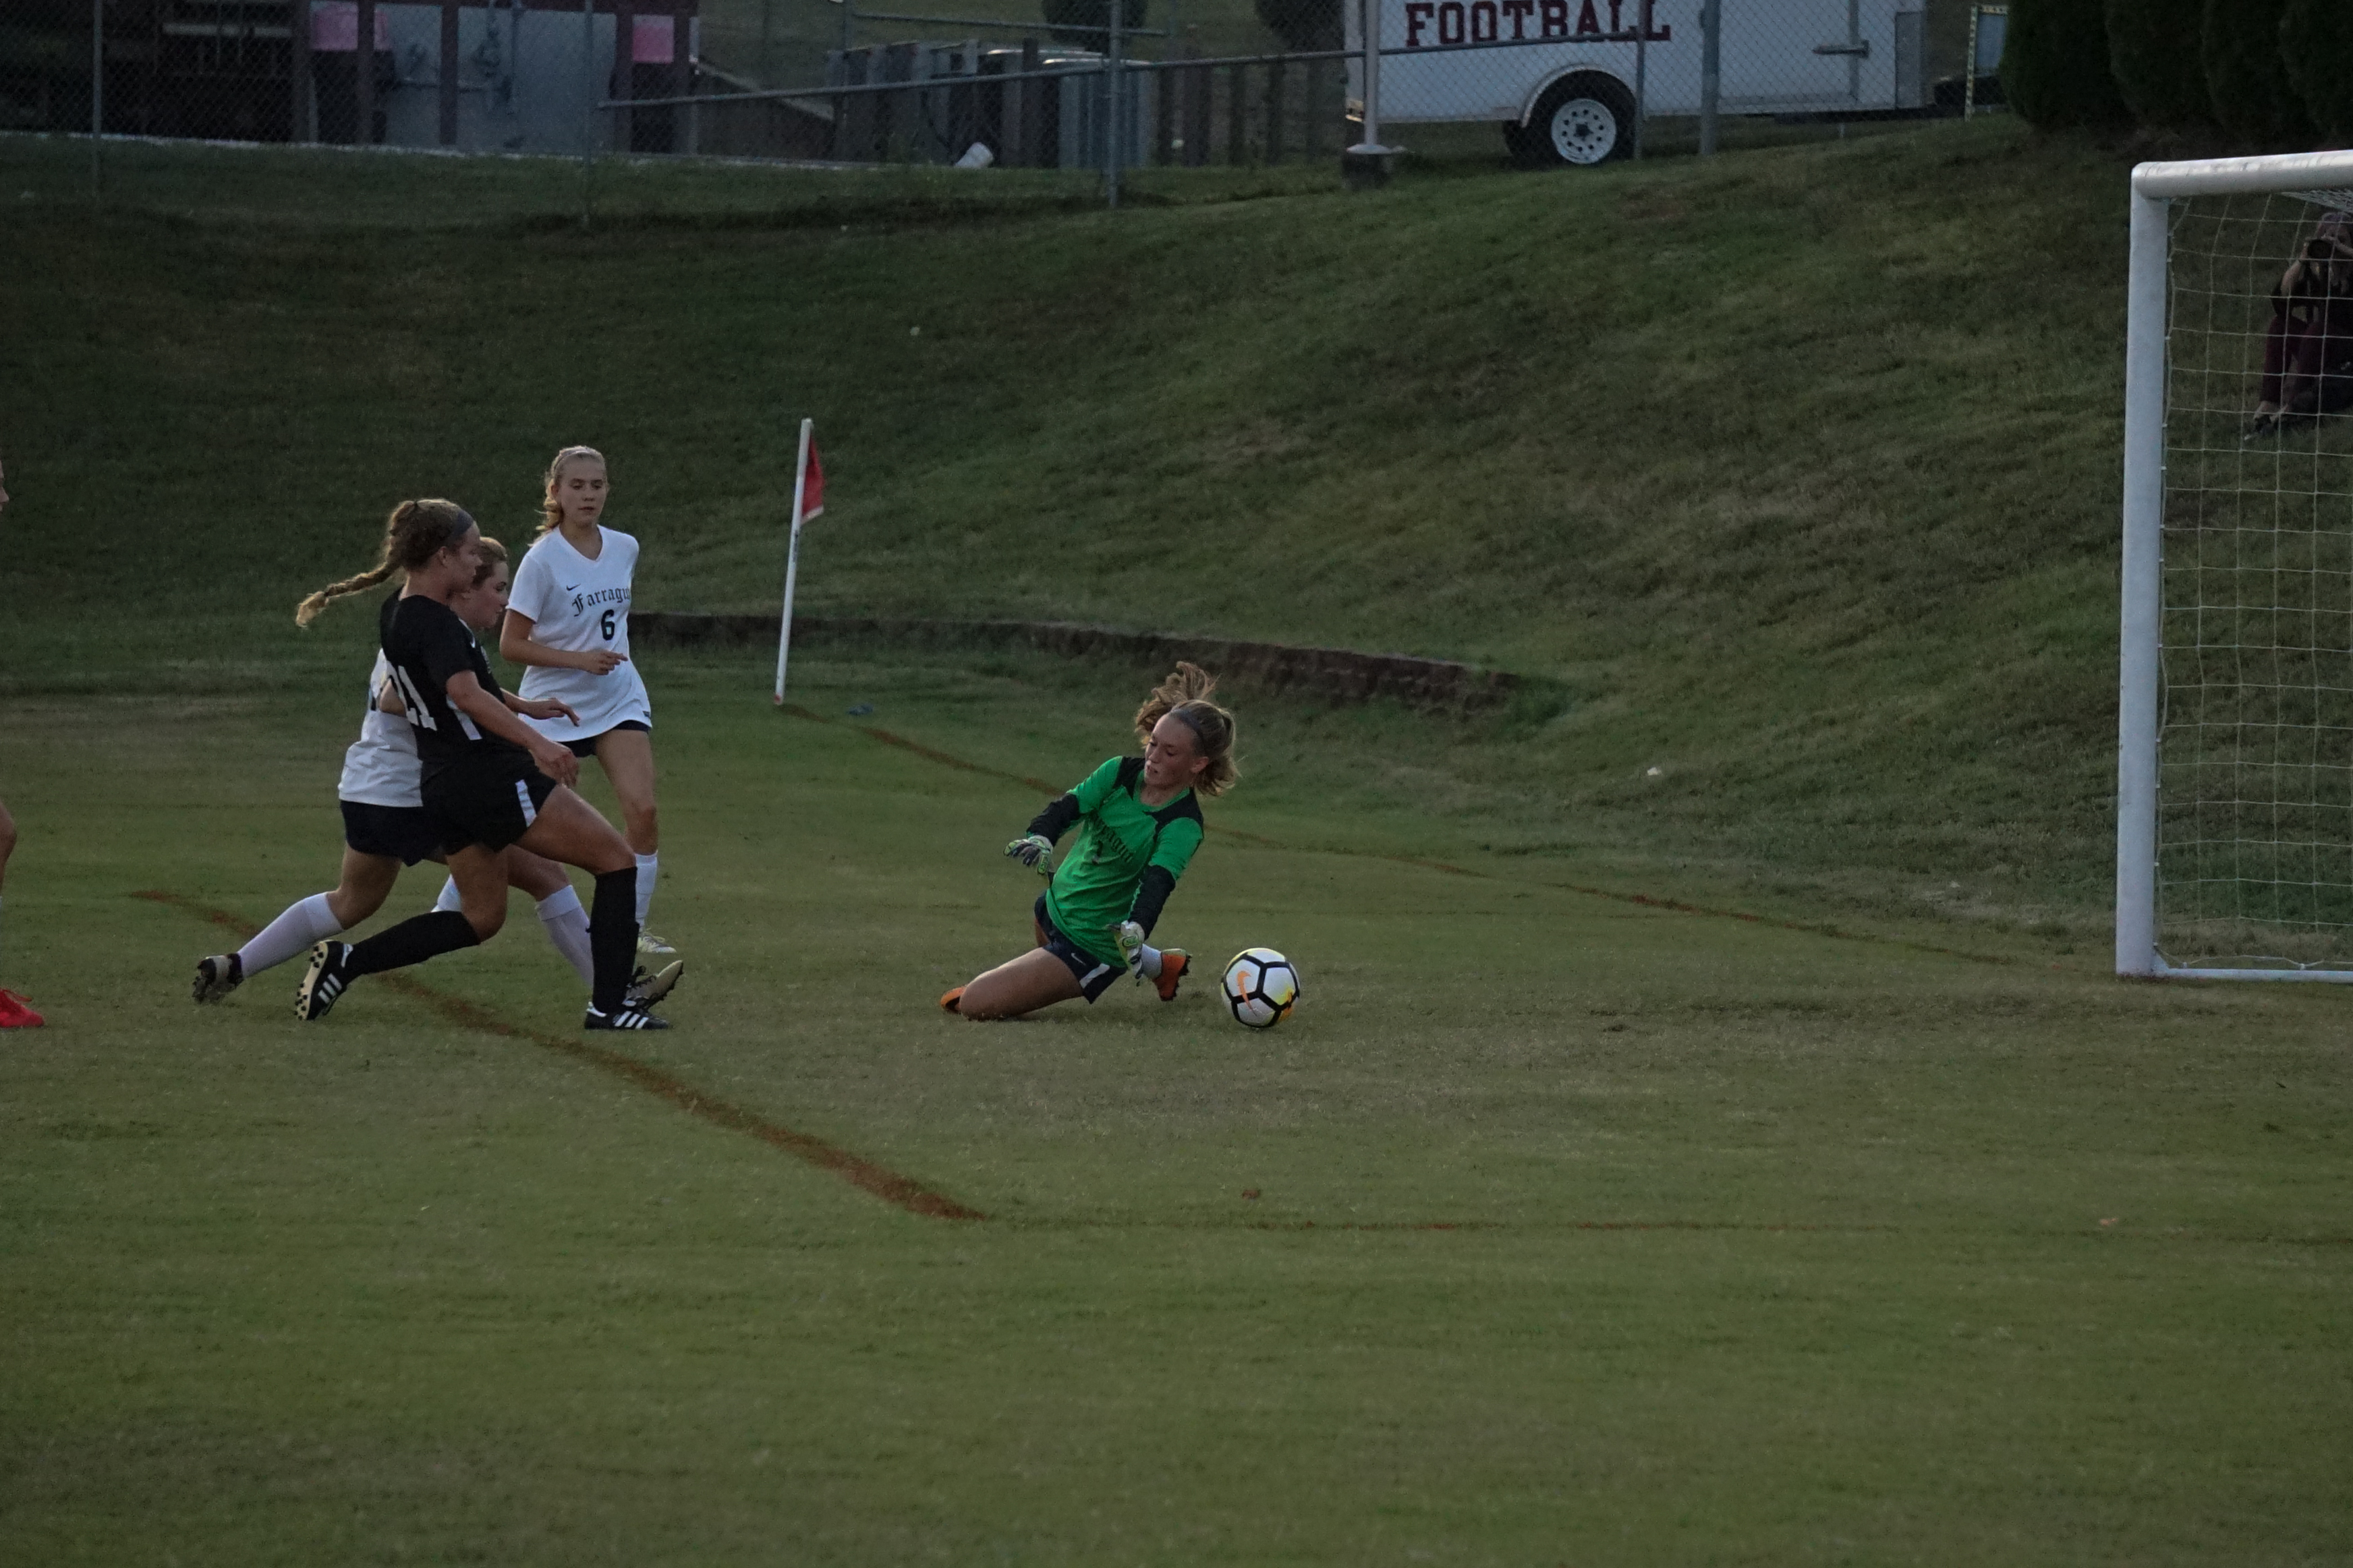 Bearden soccer jumps out to early lead, rolls past Farragut 4-0